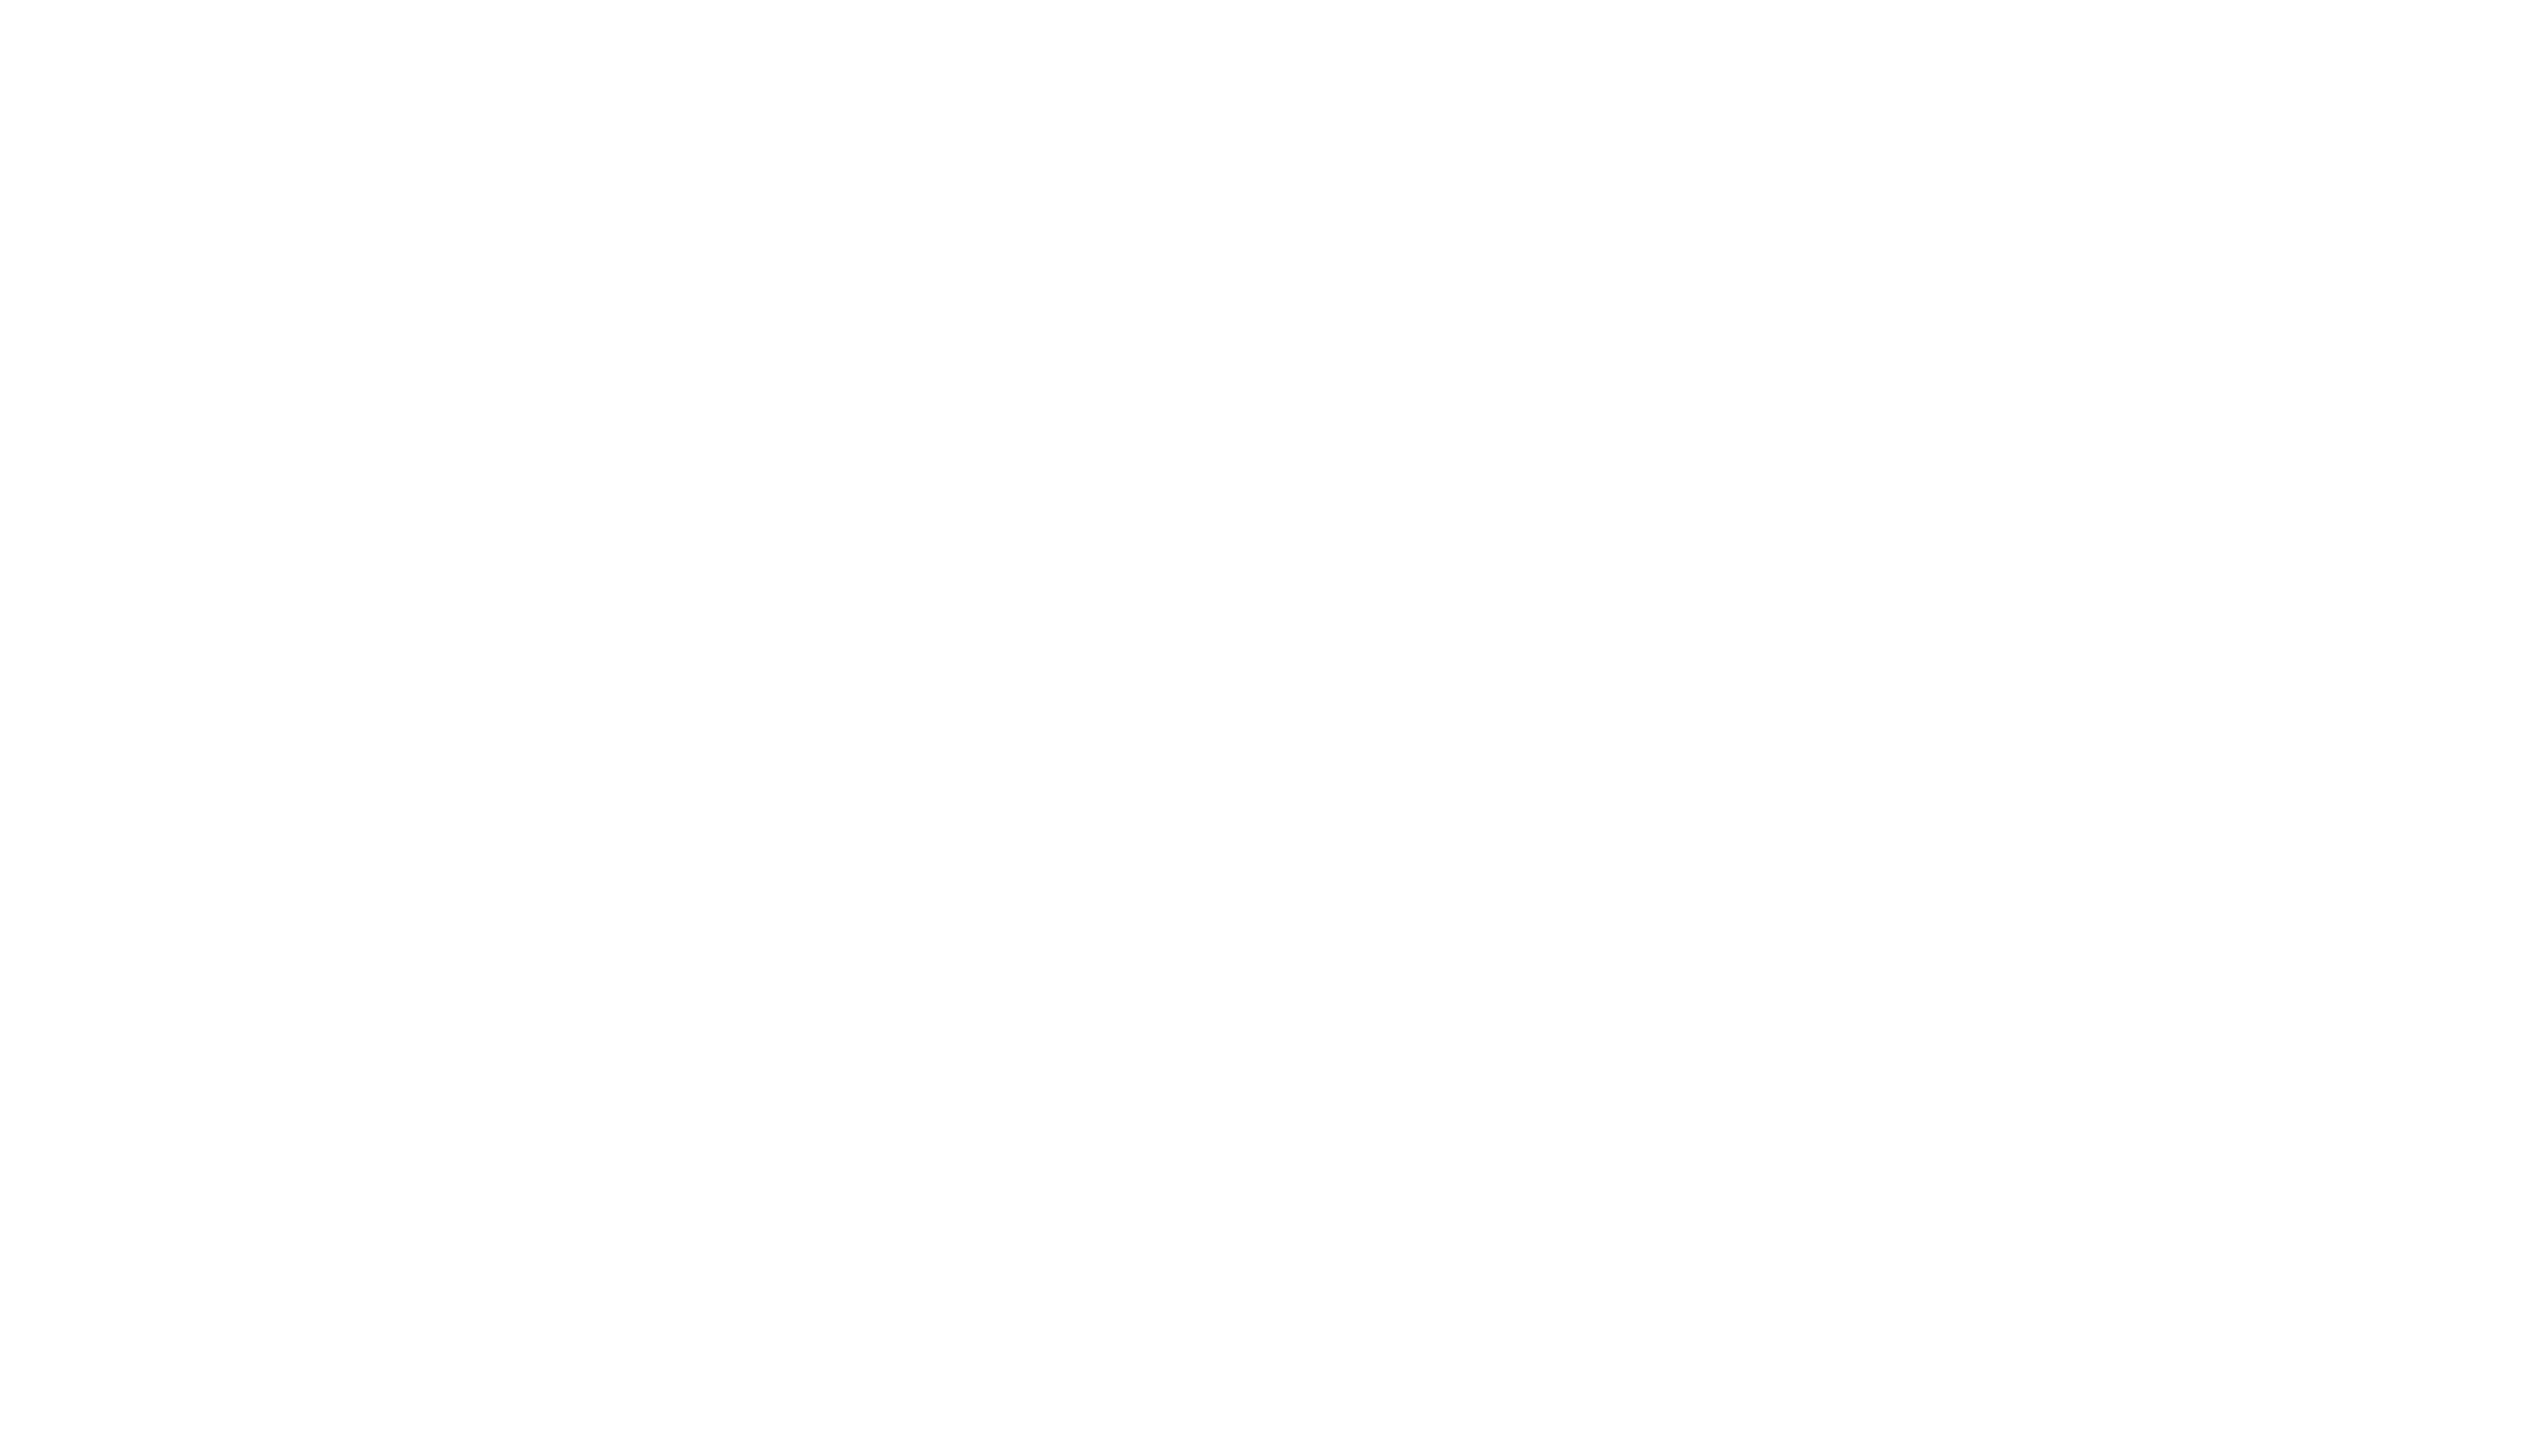 Idiart Law Group